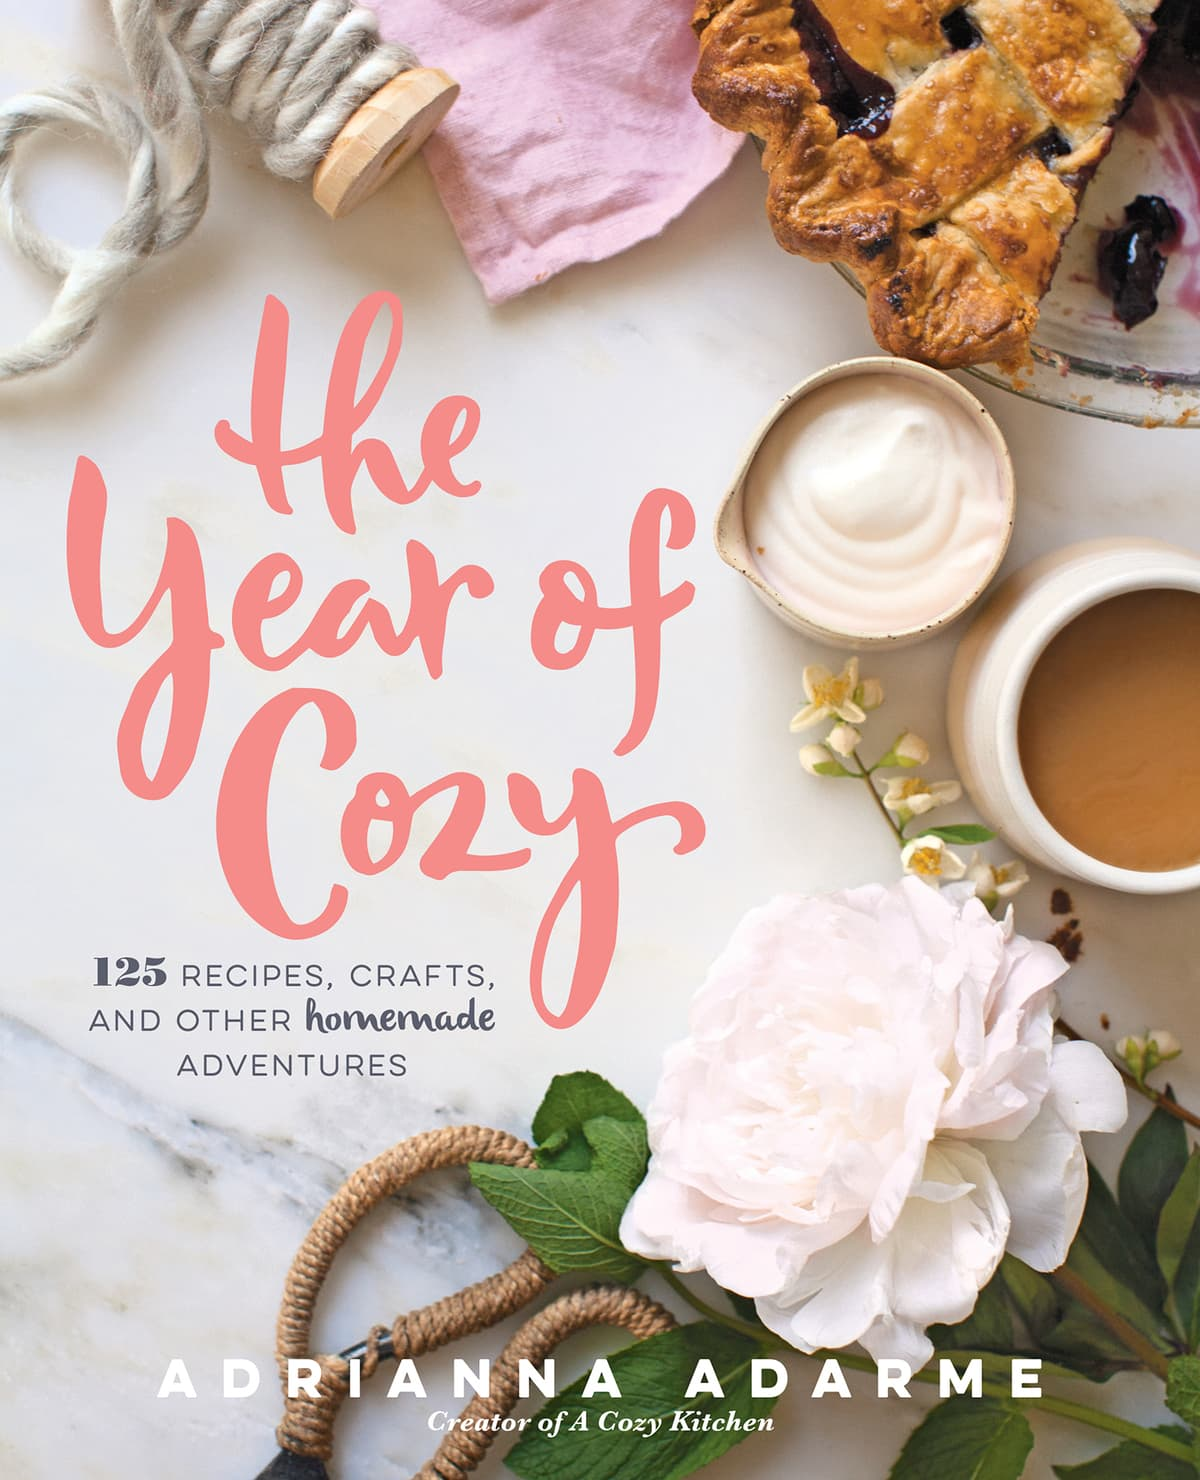 The Year of Cozy: 125 Recipes, Crafts and Other Homemade Adventures